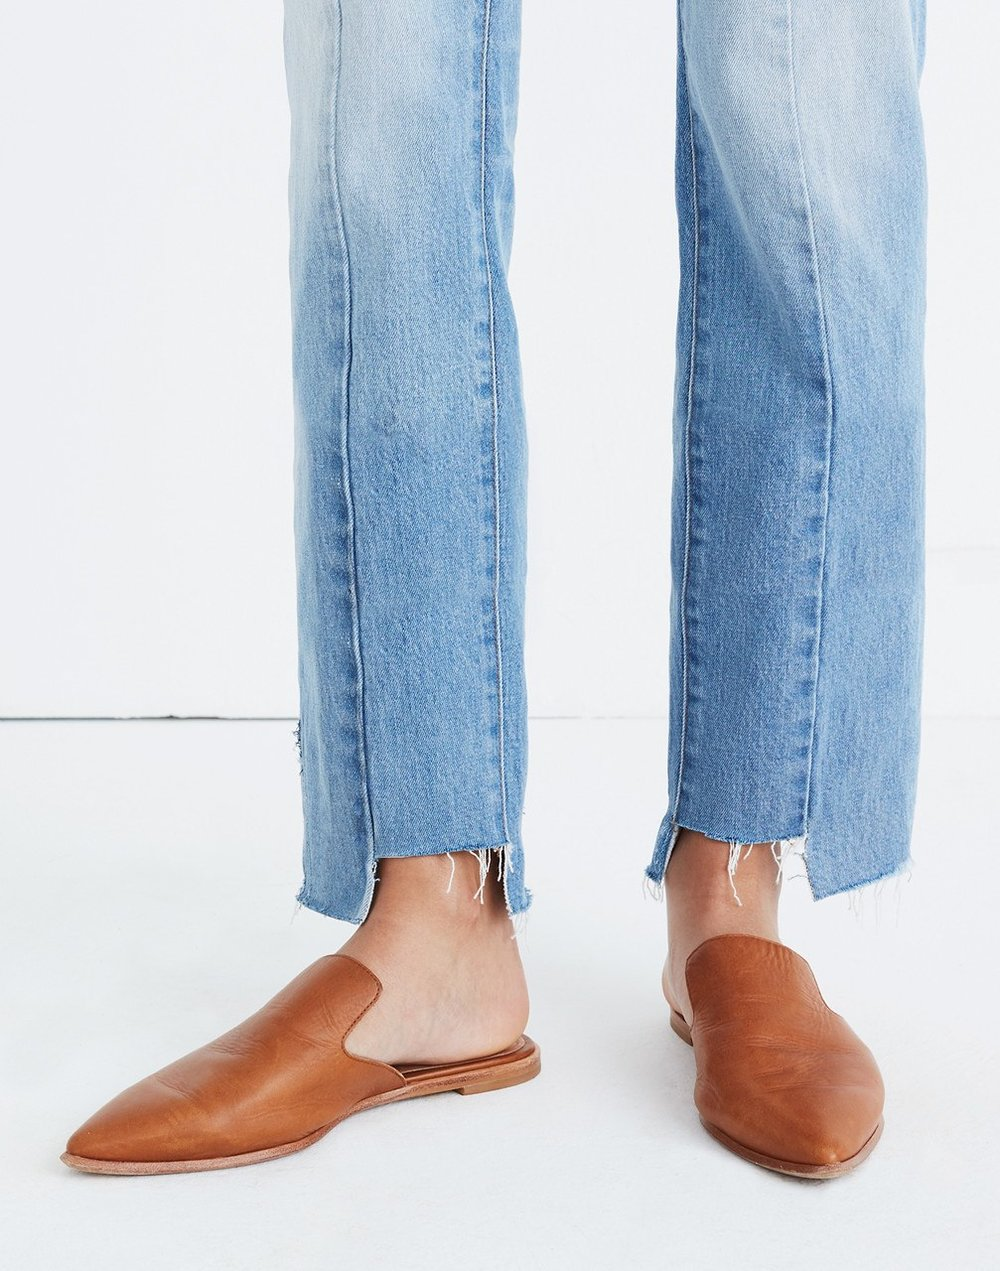 Gemma Mule Modeled- - 5 Places to Snag the Perfect Loafers & Mules for Fall -Sabine Forever - sabineforever.com.jpg